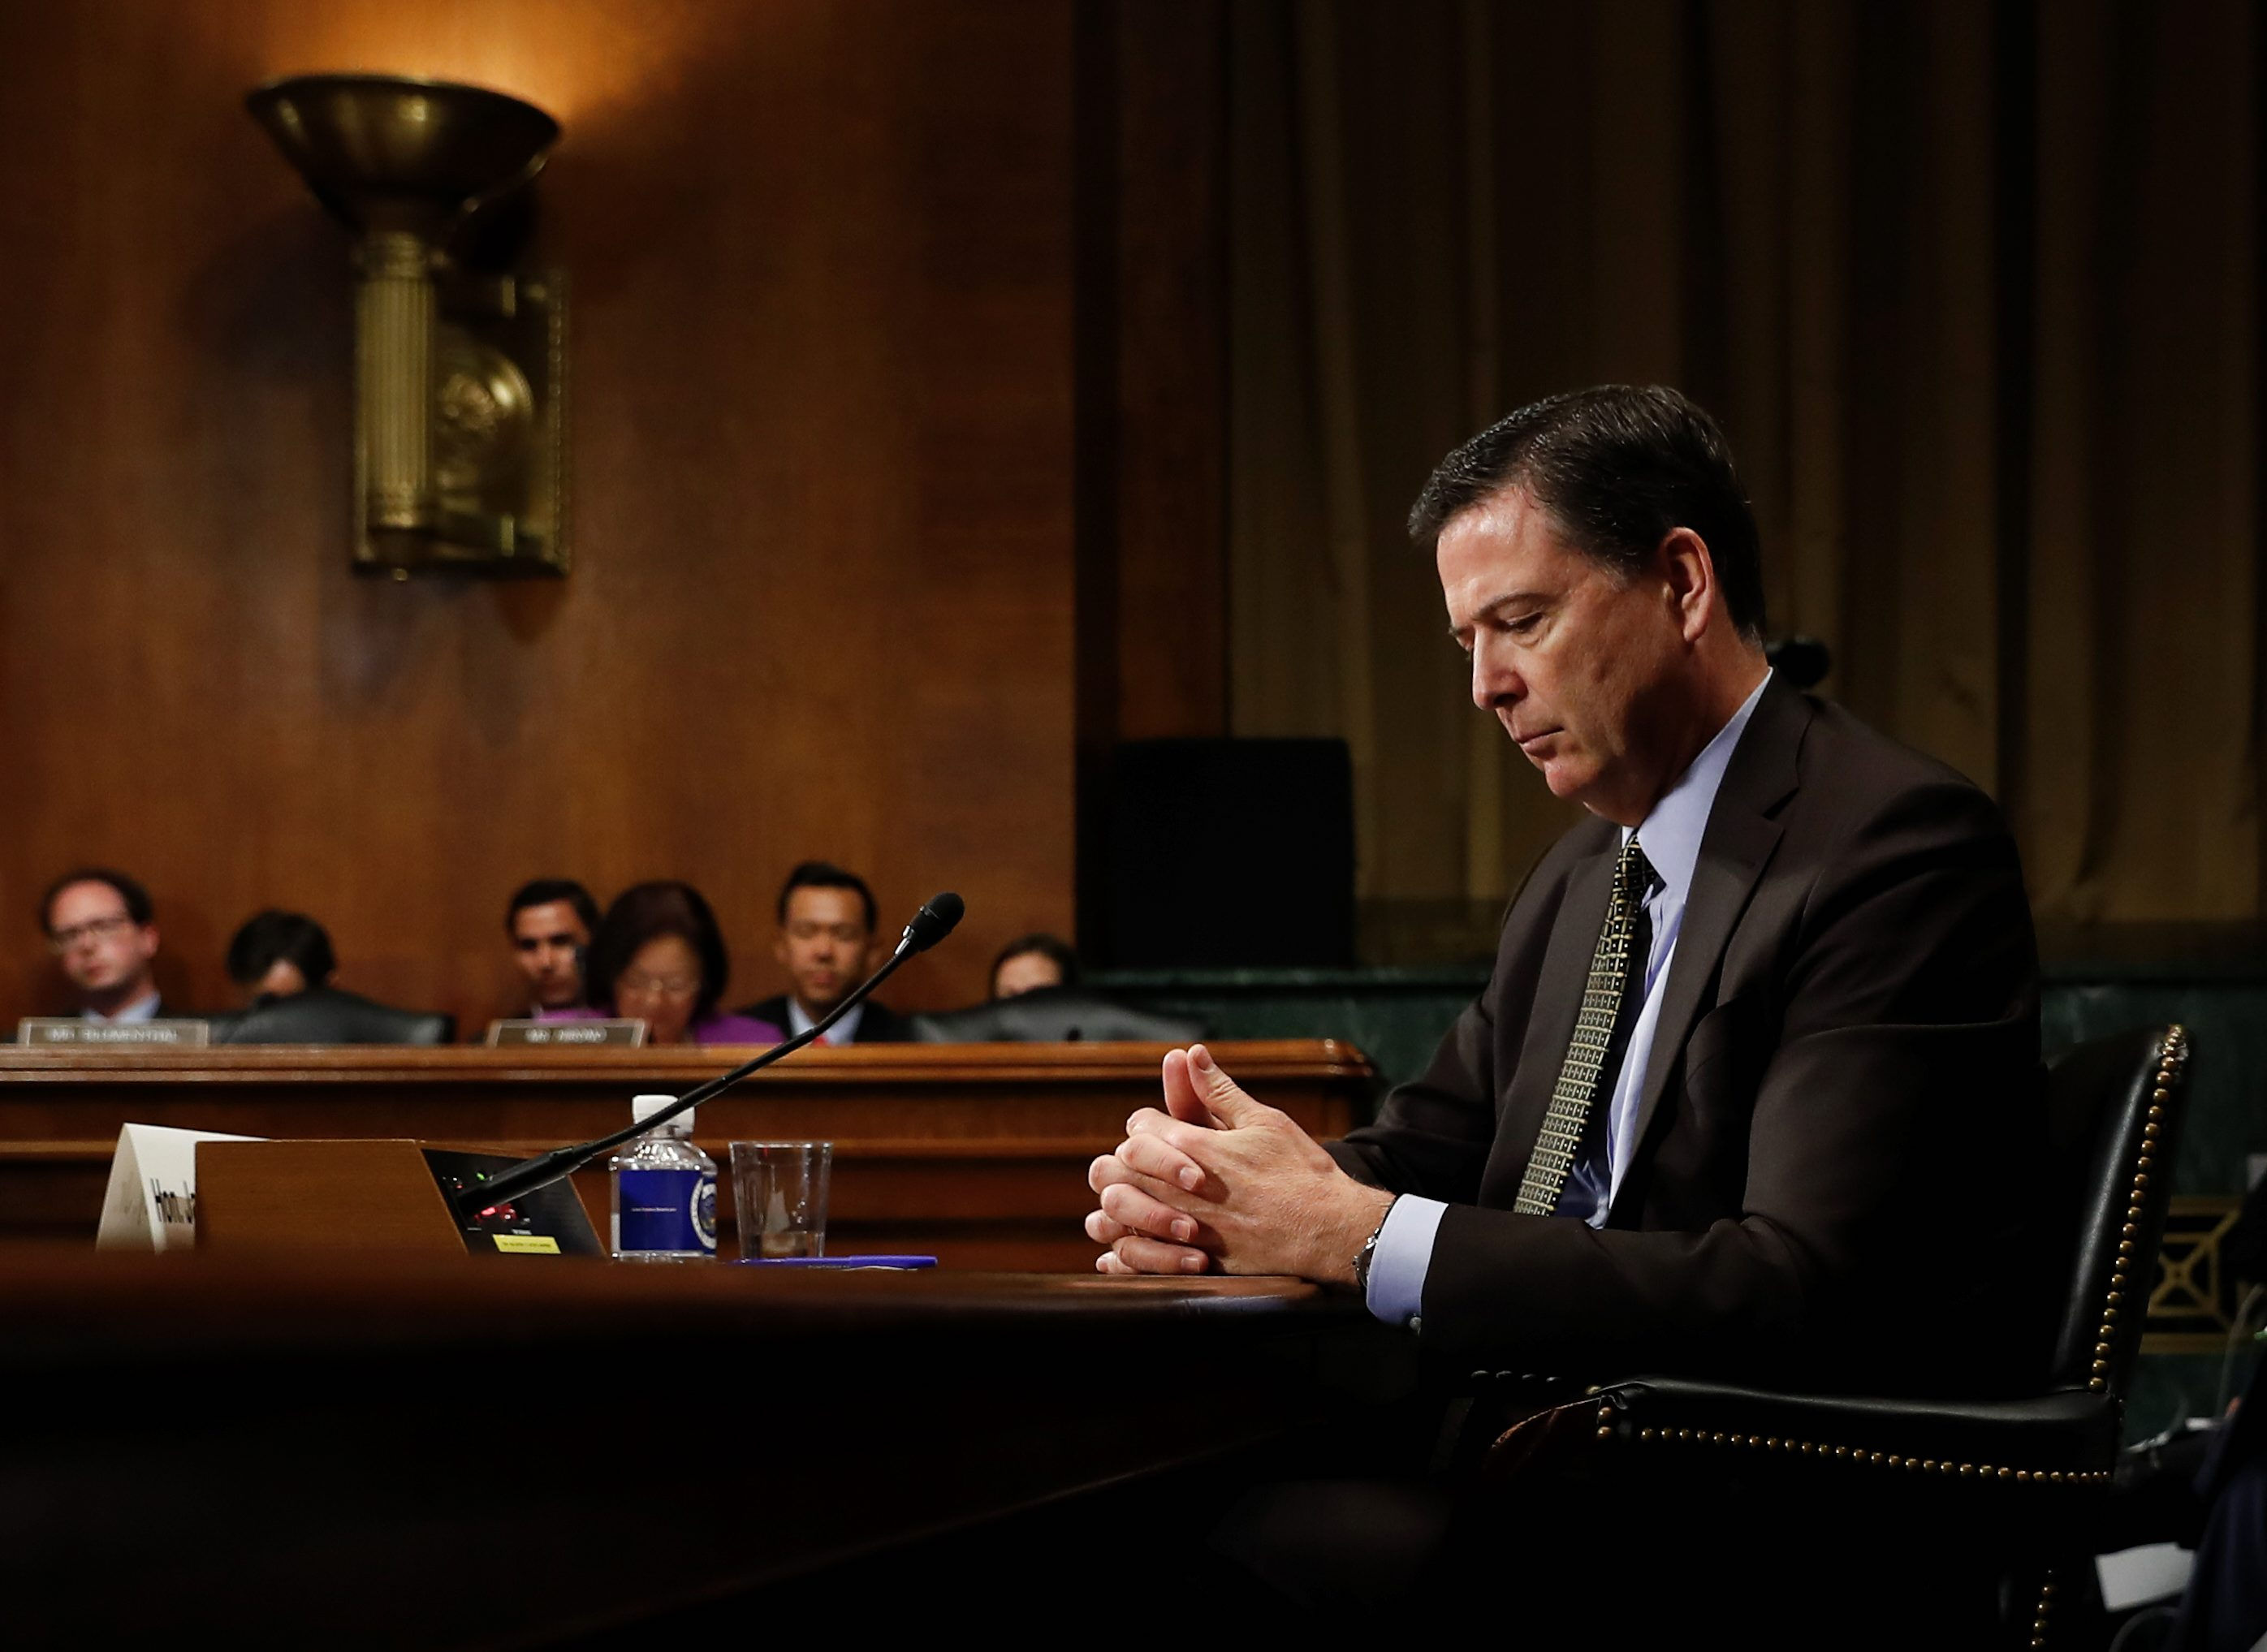 James Comey referred for criminal prosecution by Justice Department IG